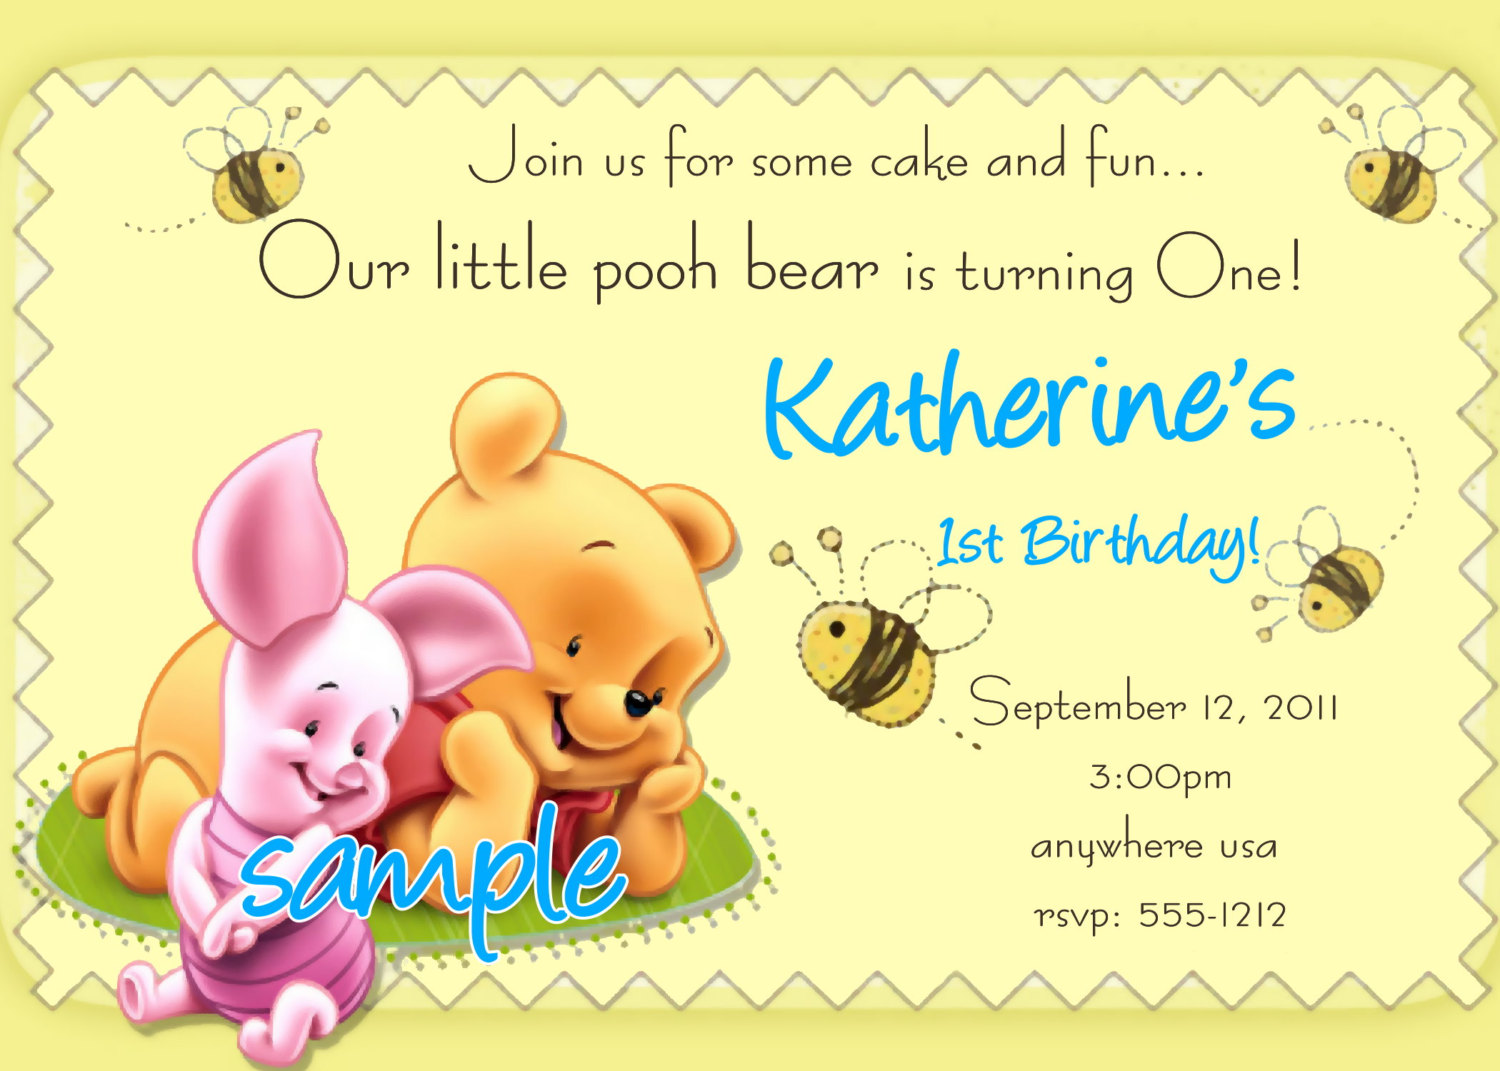 design an invitation card for your birthday party ; Awesome-Birthday-Invitation-Cards-To-Design-Birthday-Party-Invitation-Template